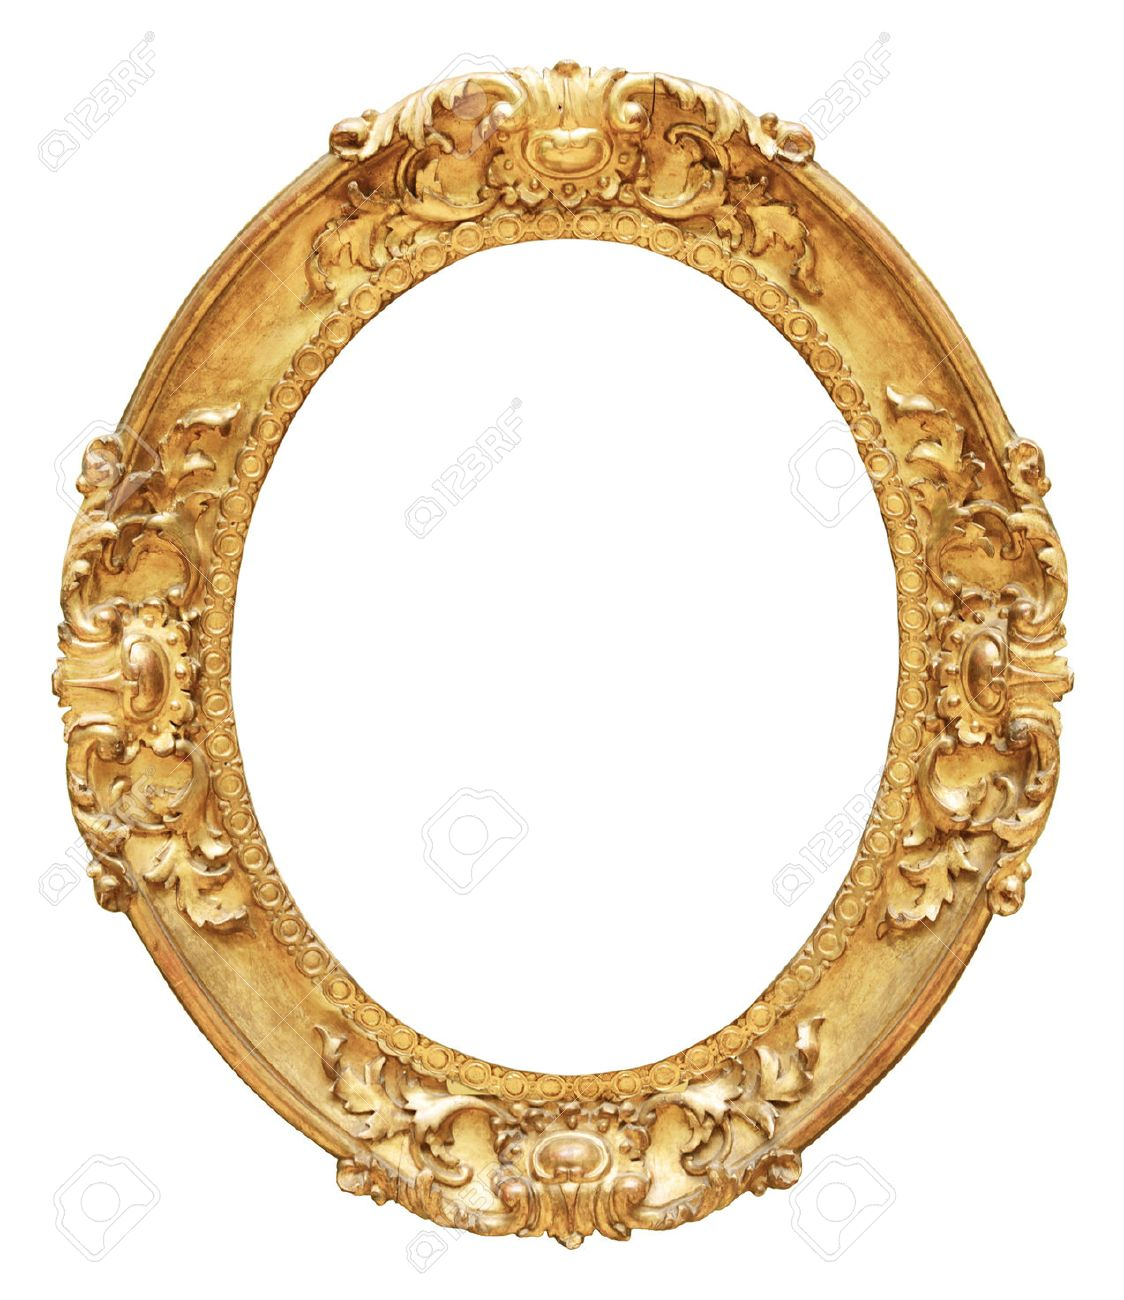 Gold Vintage Oval Frame Isolated On White Background Stock Photo ...